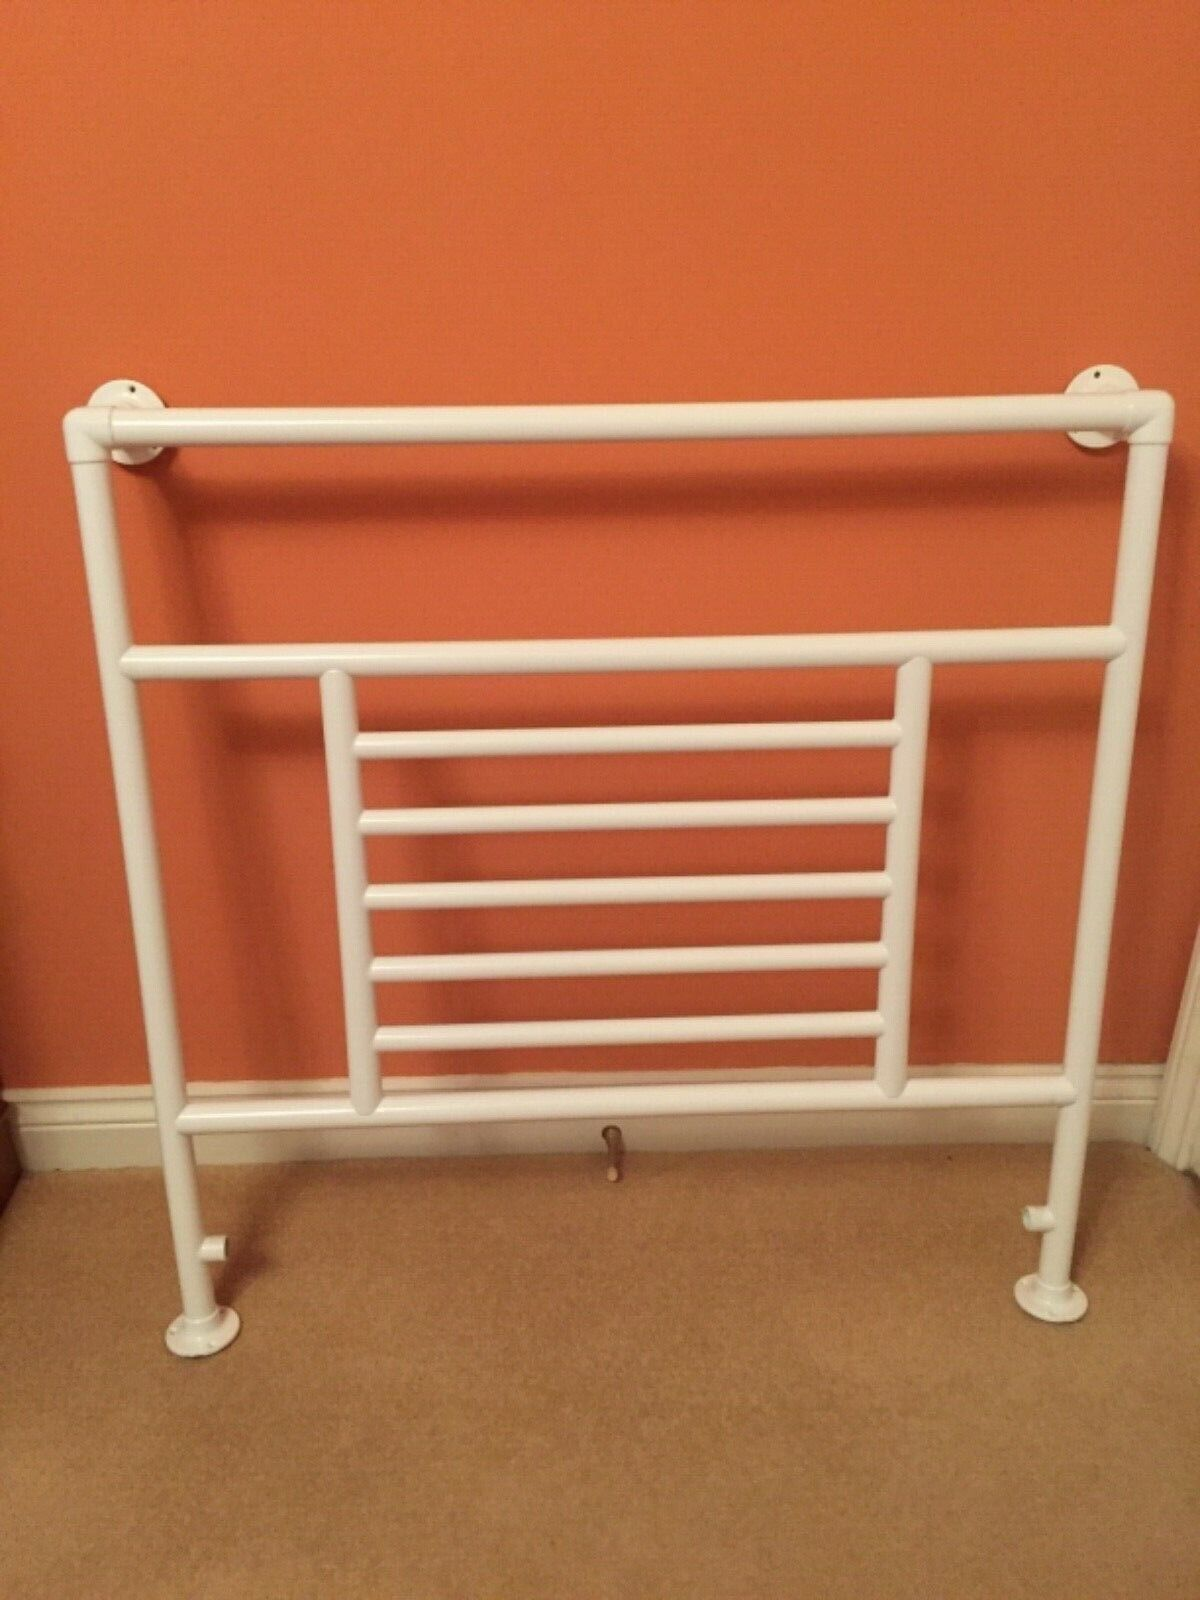 *HEATED BATHROOM TOWEL RAIL* WHITE (on brass/copper) made in UK *NEW* No reserve